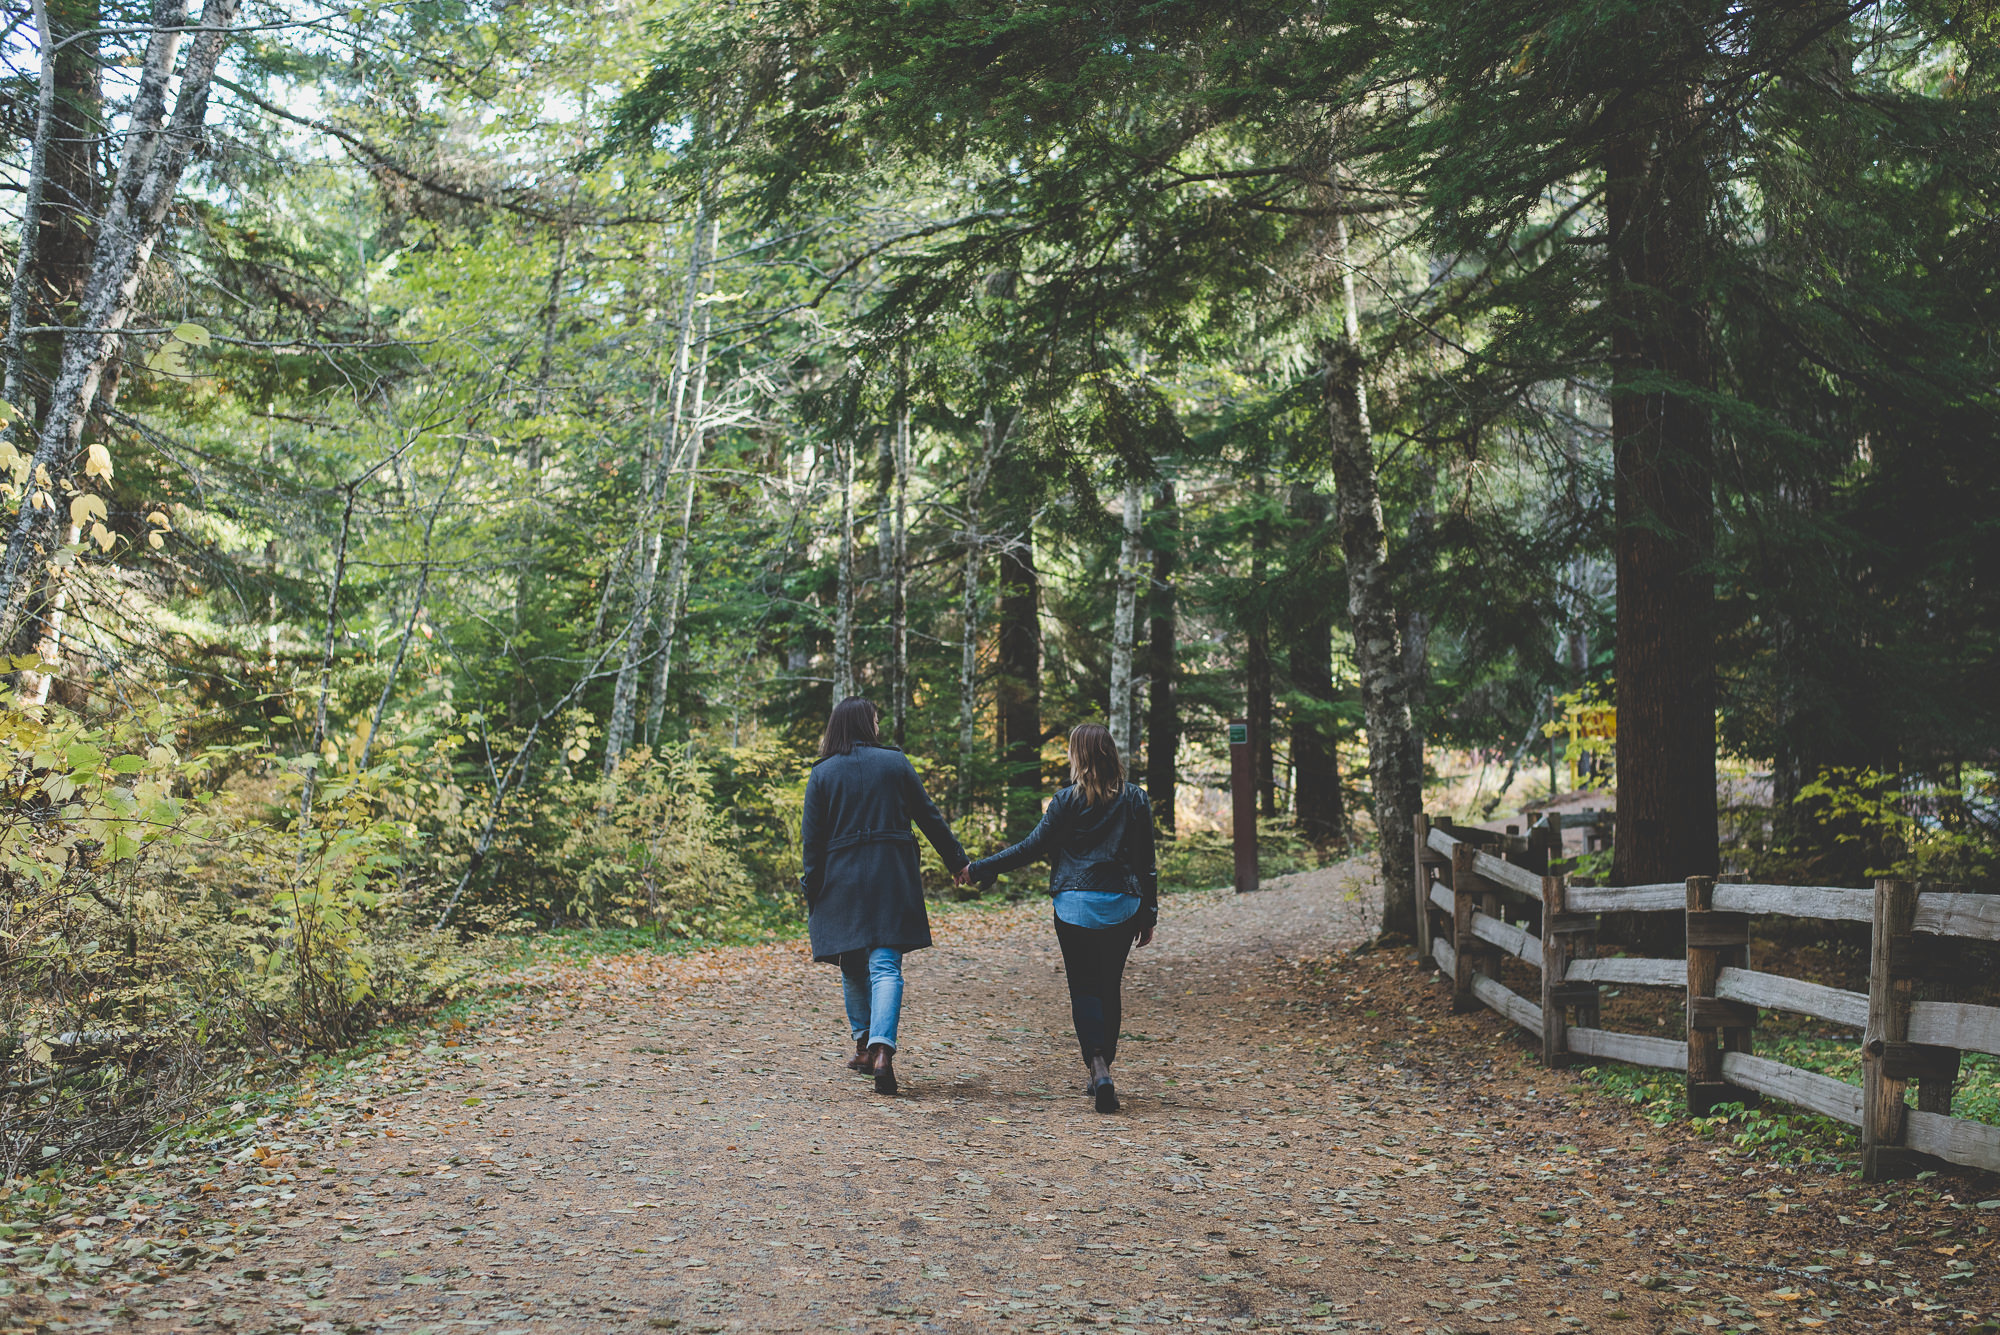 lesbian couple holding hands and walking away down a path